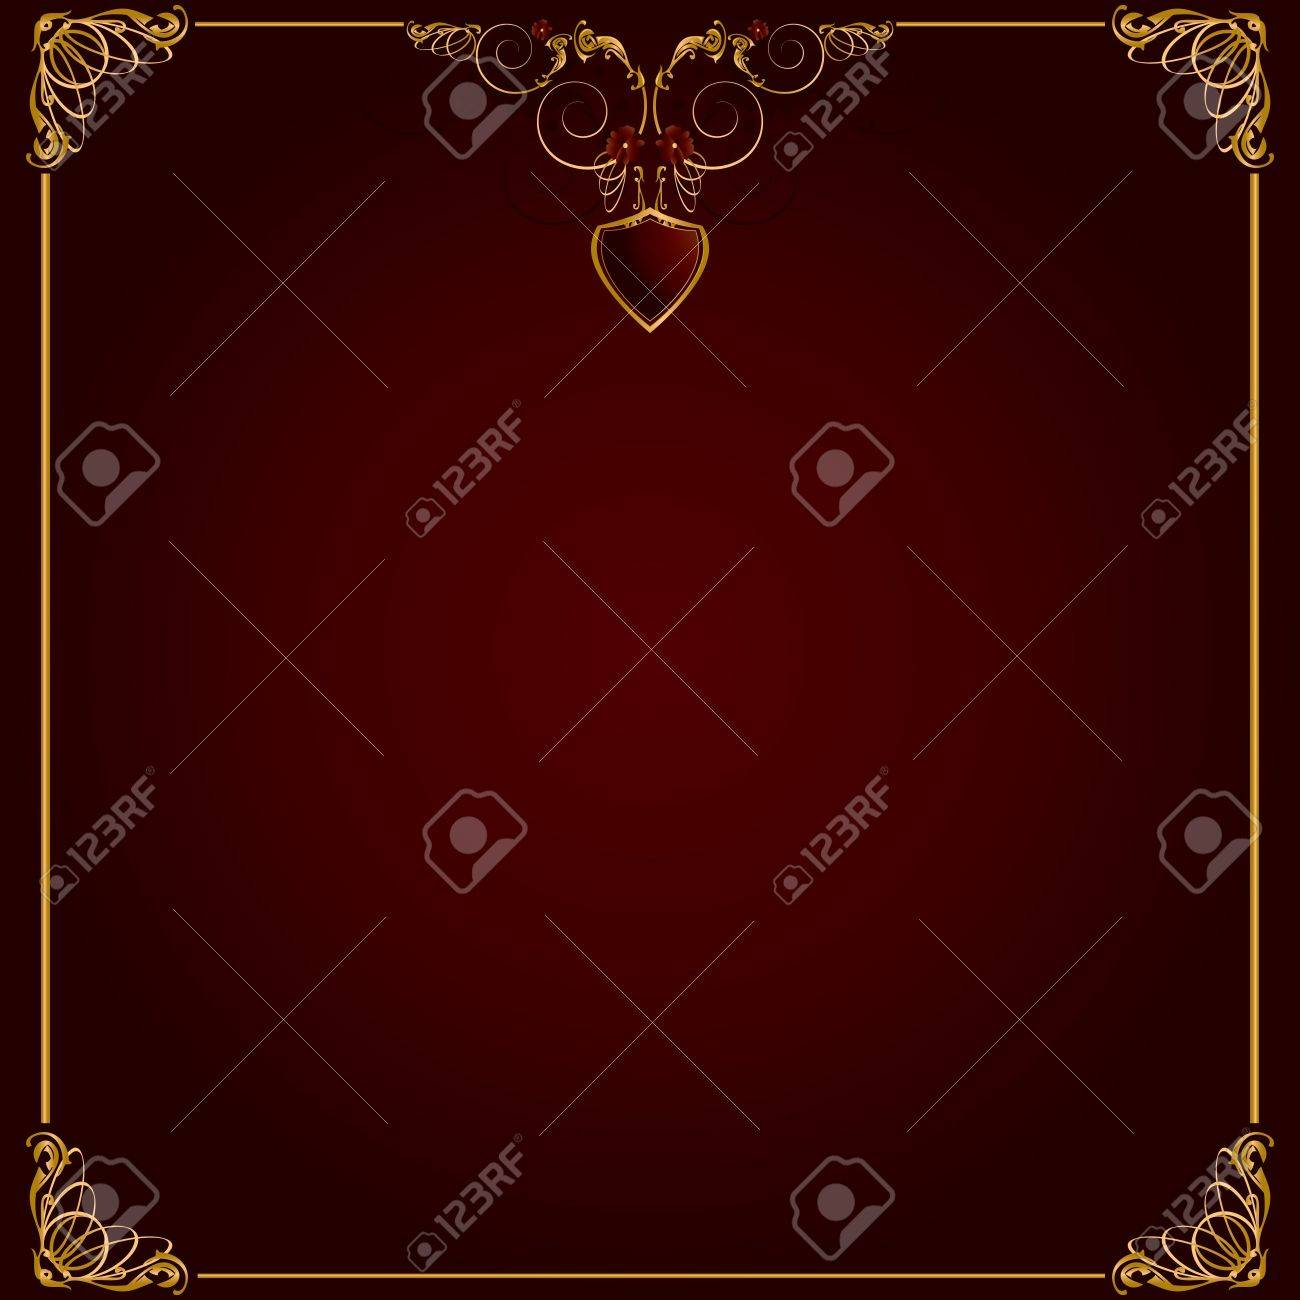 Delicate gold frame design on a red background - 4679337